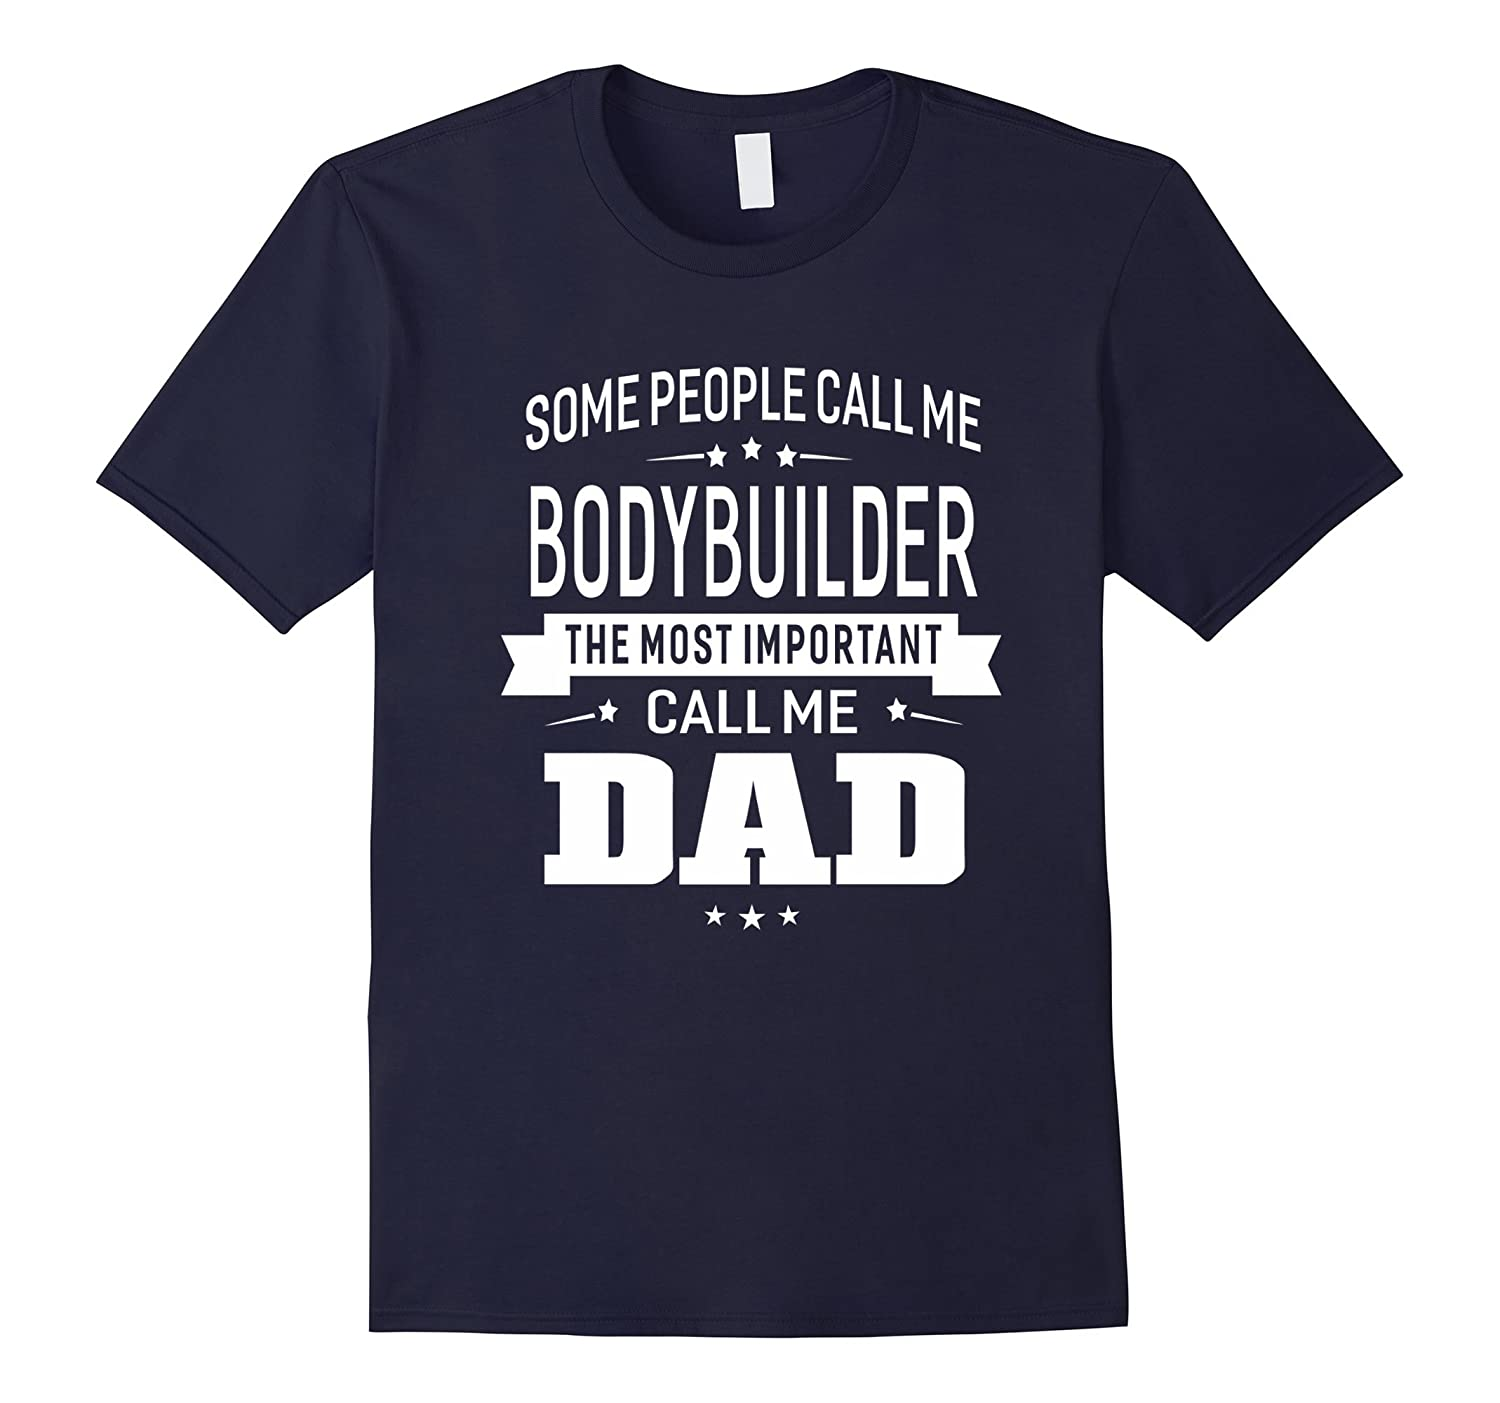 Some Call Me Bodybuilder Important Call Me Dad Men T-shirt-TD